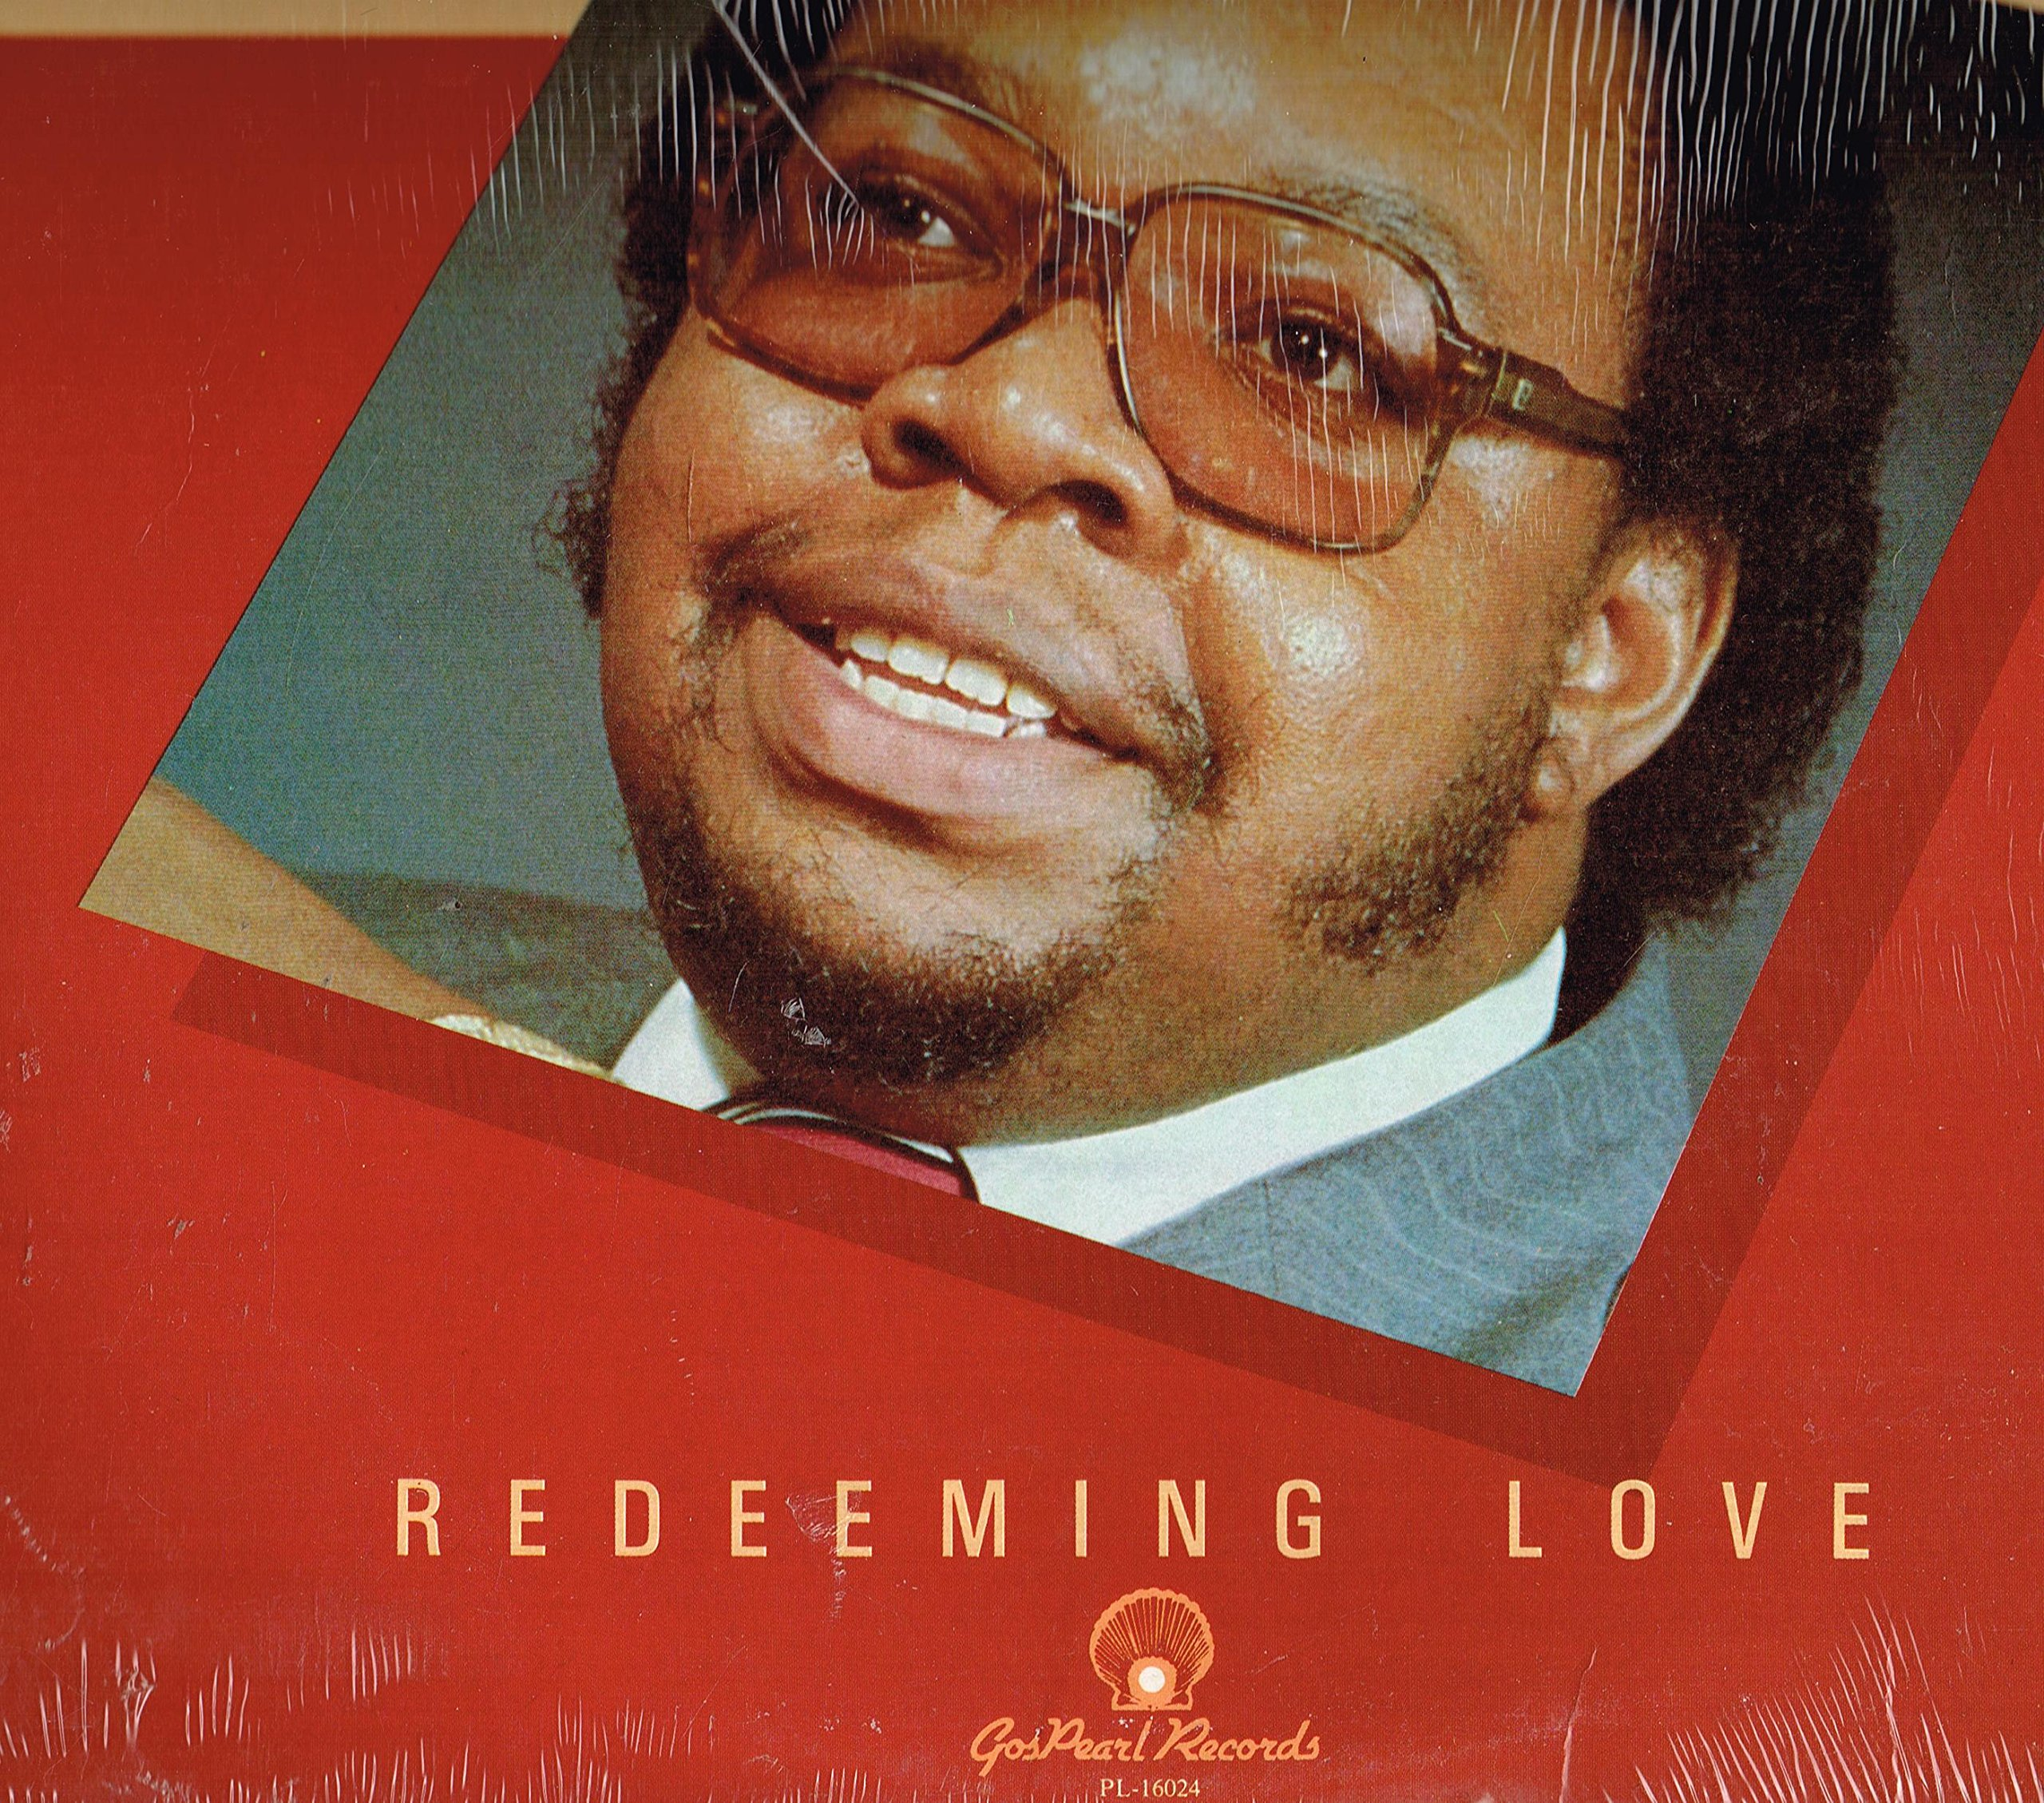 Redeeming Love by GosPearl Records